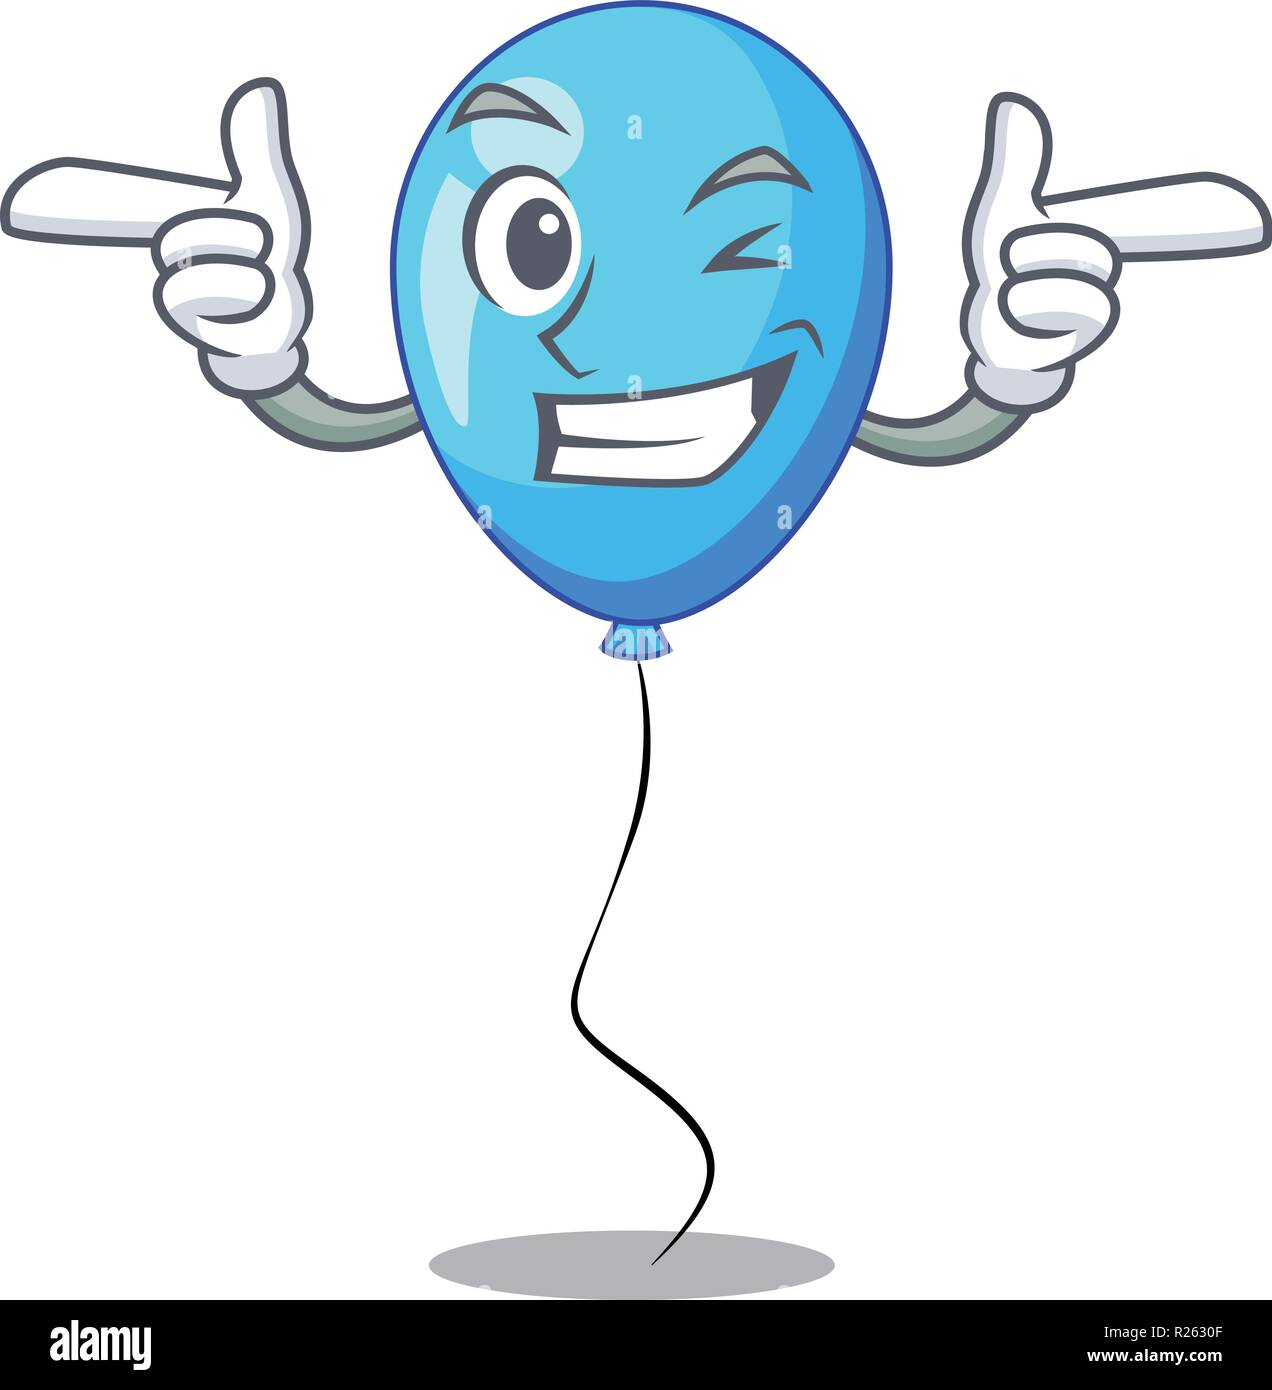 Wink blue balloon character on the rope - Stock Image